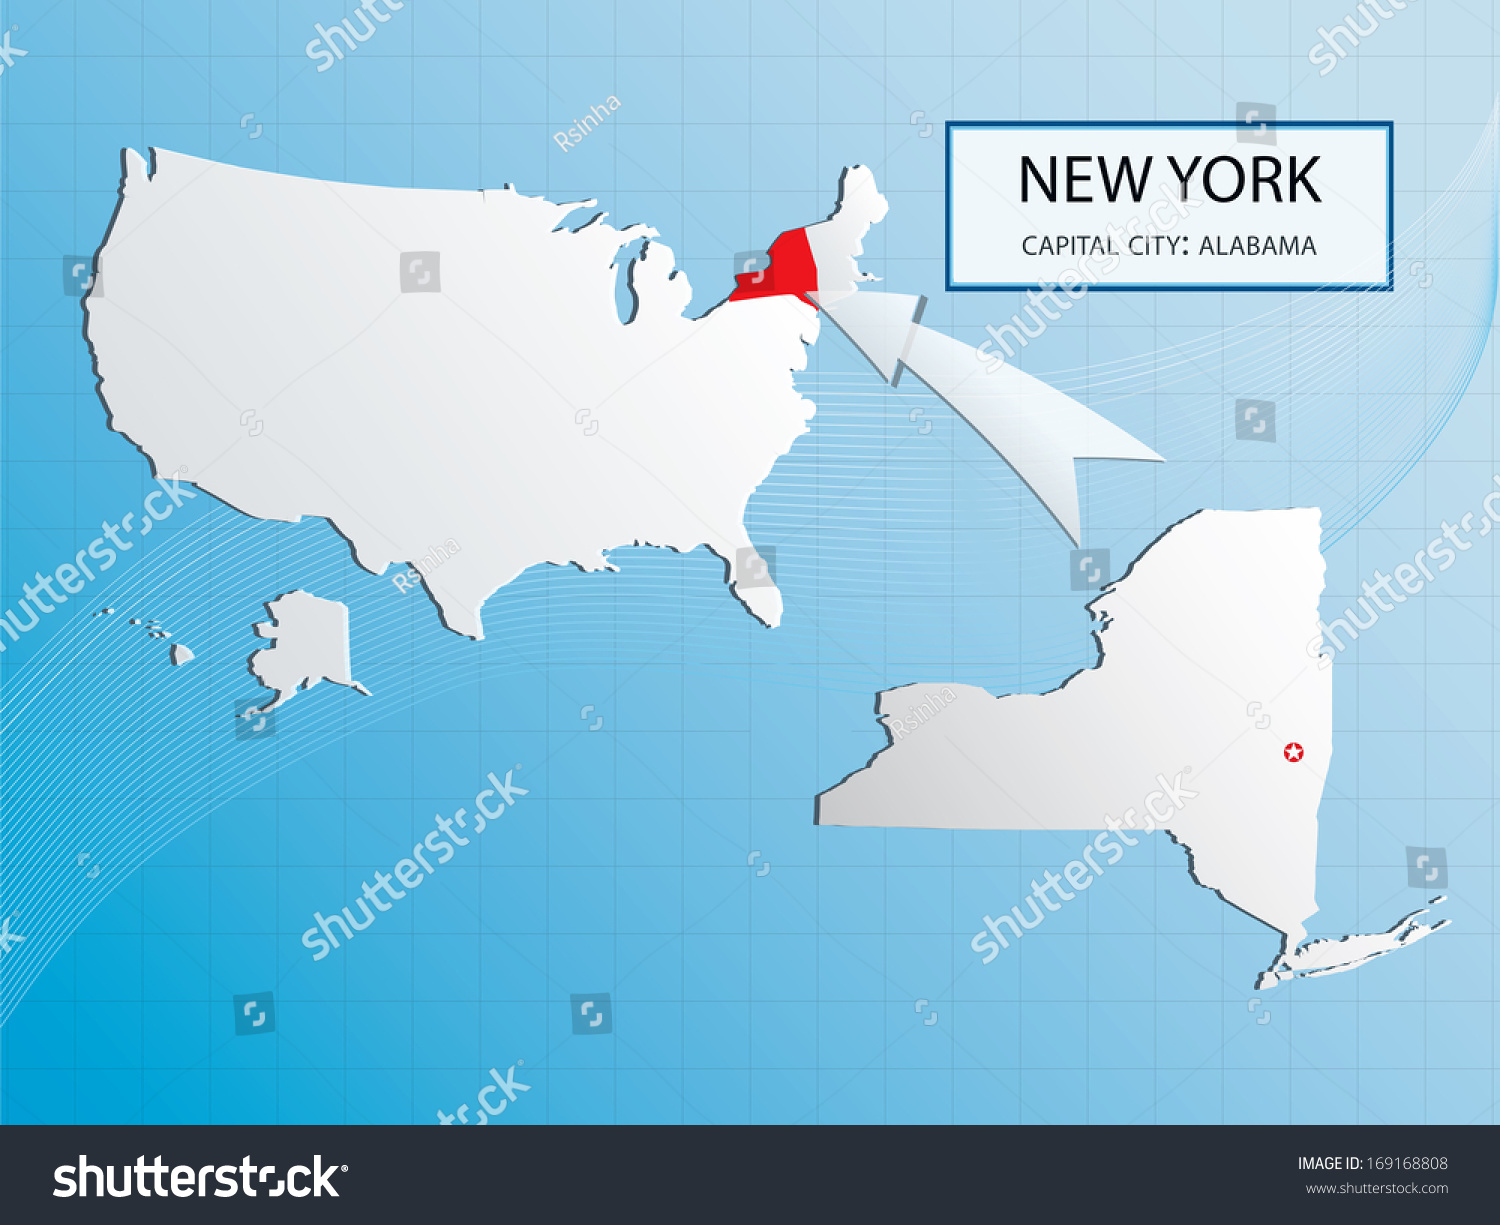 New York Map Marked Usa Map Stock Vector Shutterstock - Alabama map usa